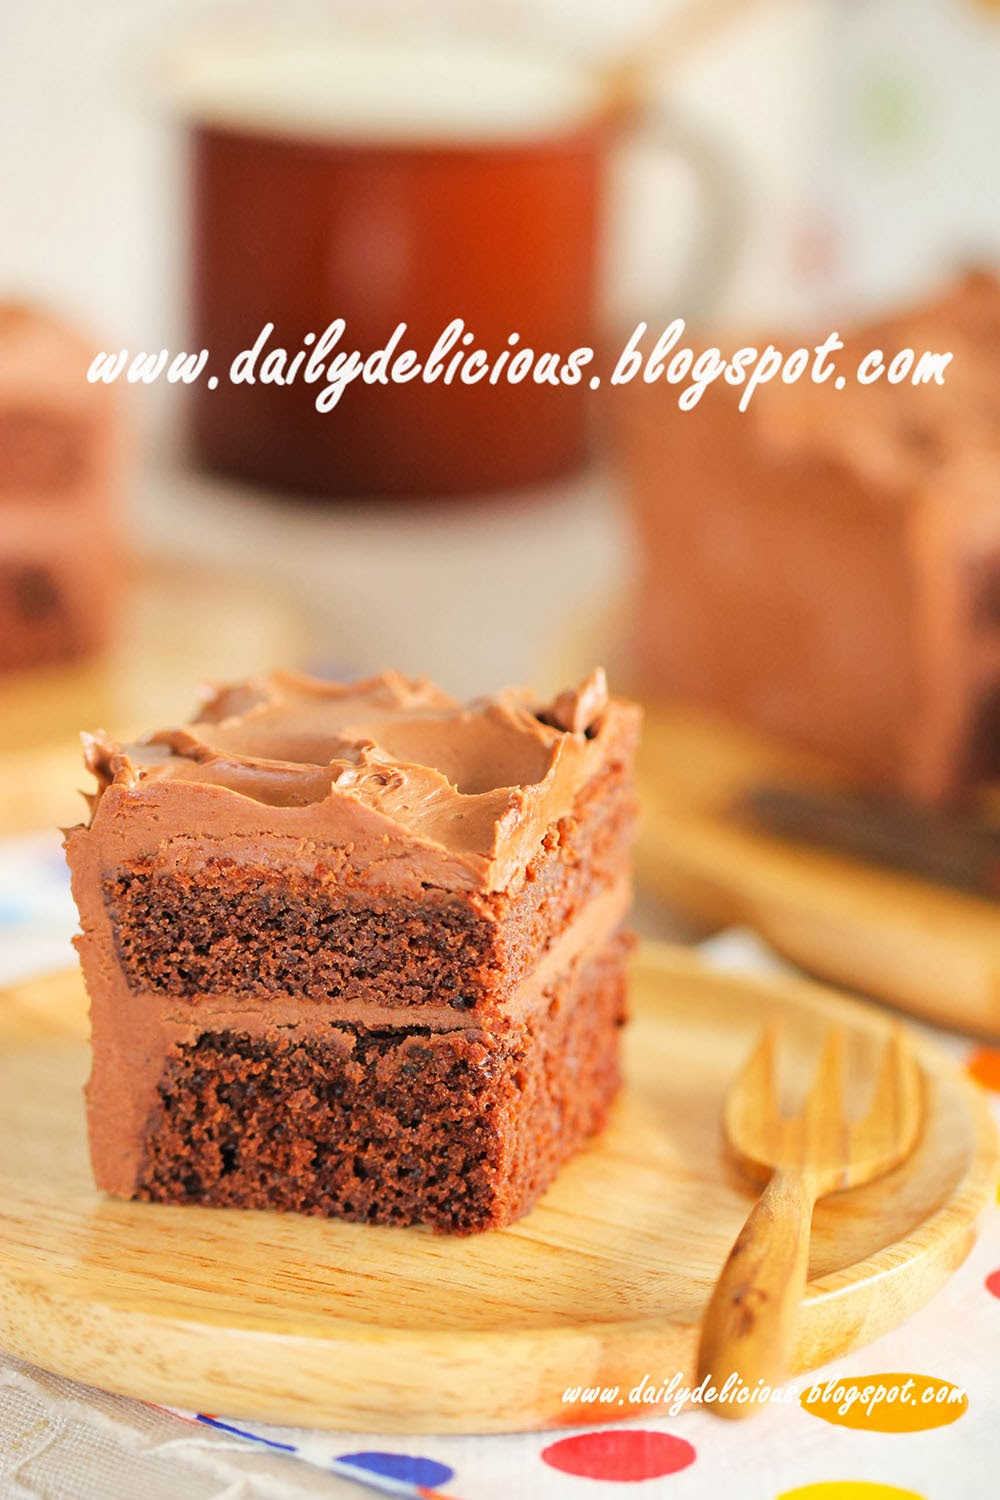 dailydelicious: Chocolate Cake with Chocolate Mascarpone Frosting